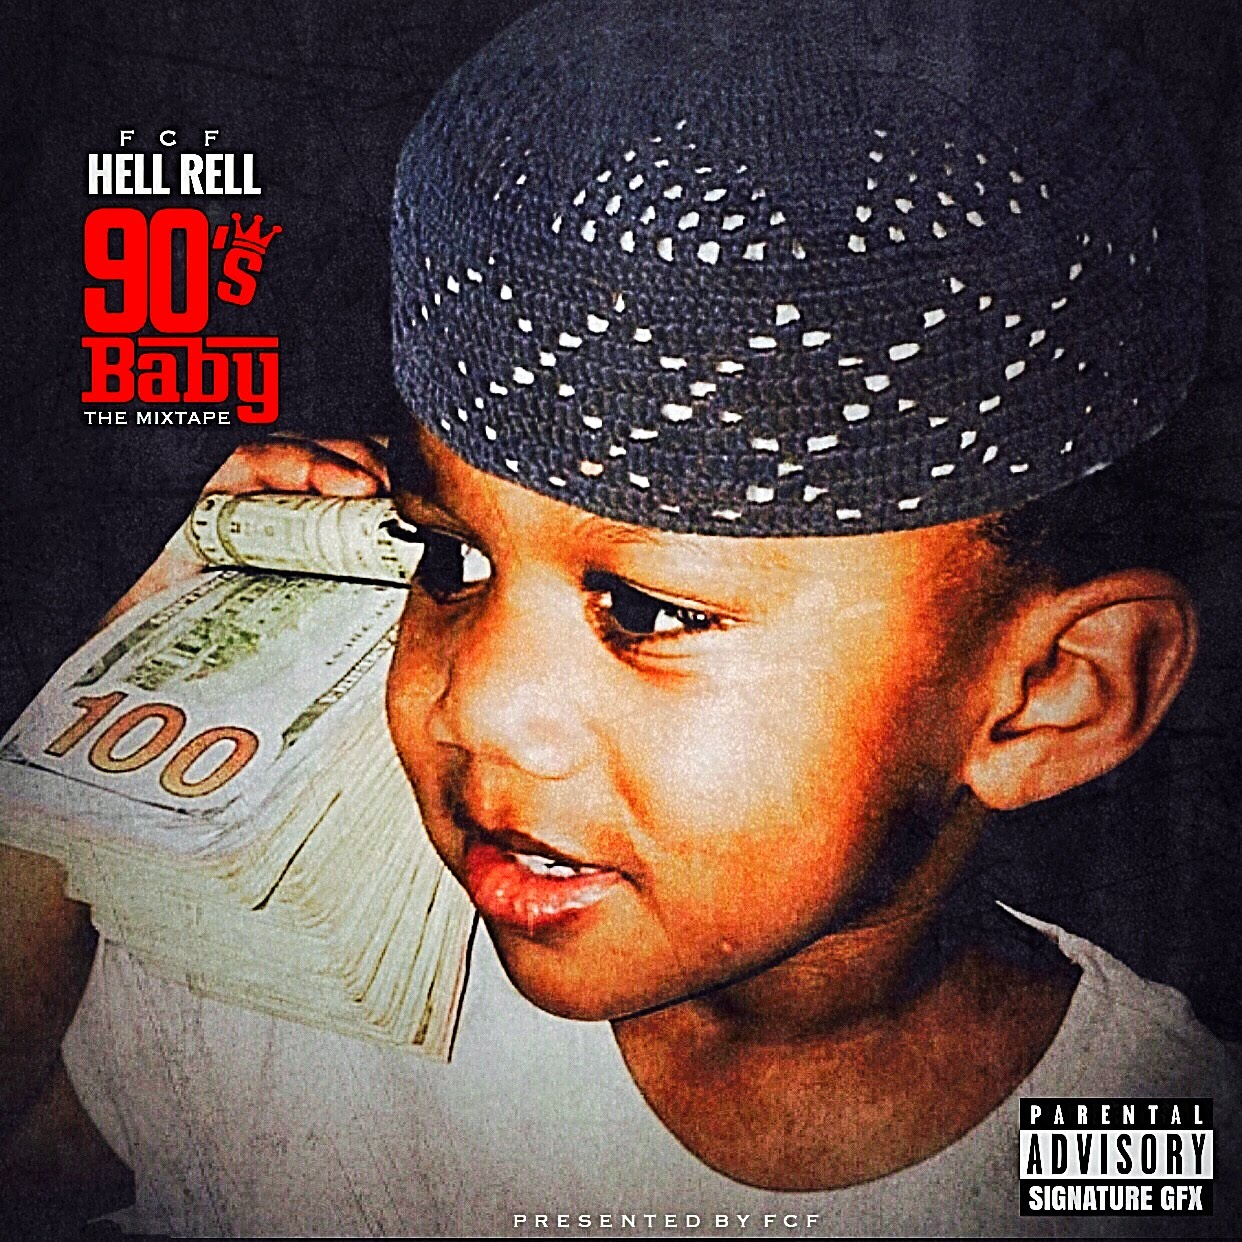 hell rell for the hell of it album download